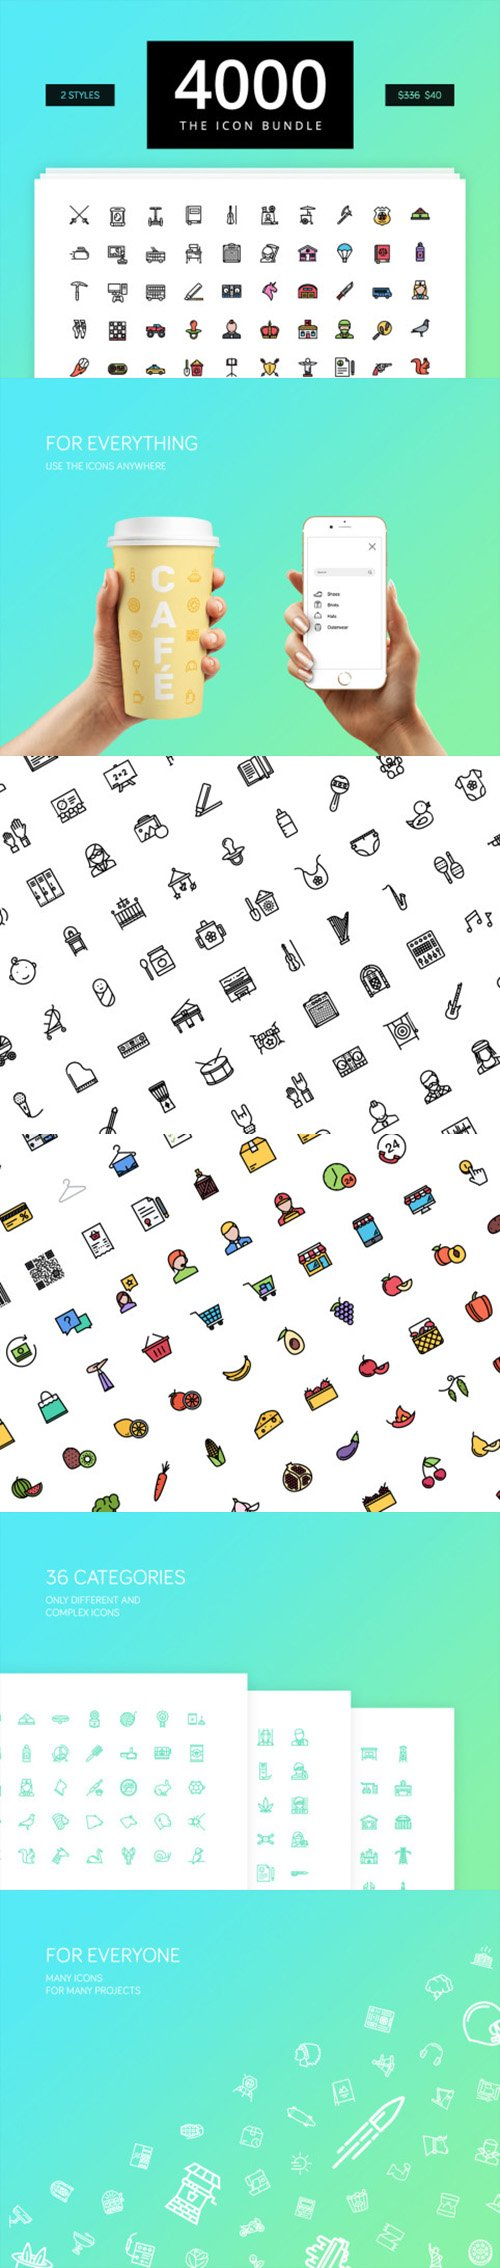 The Icon 4000 - 4000 Outline & Color Icons